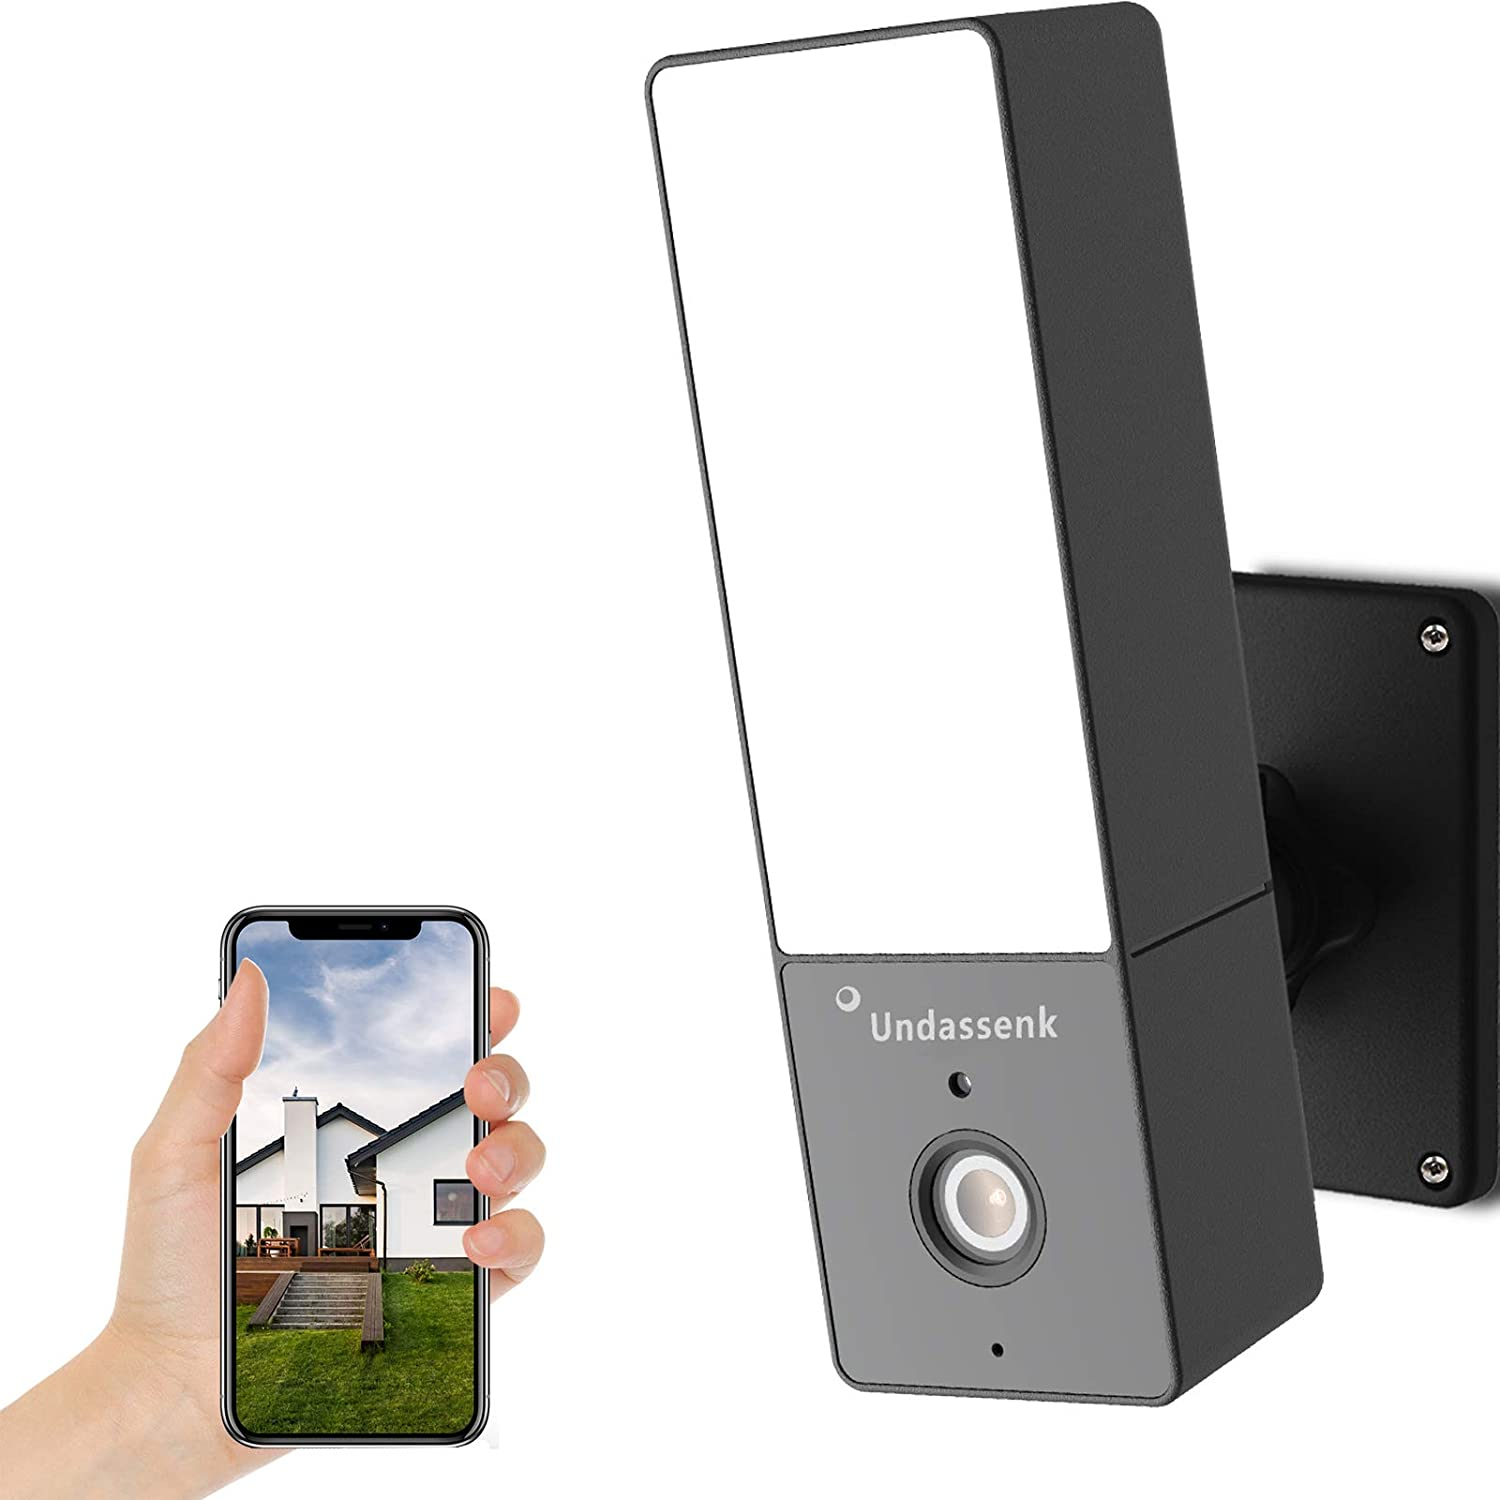 Undassenk Cheap mail order specialty store Outdoor Security At the price Camera WiFi 1080P Floodlight